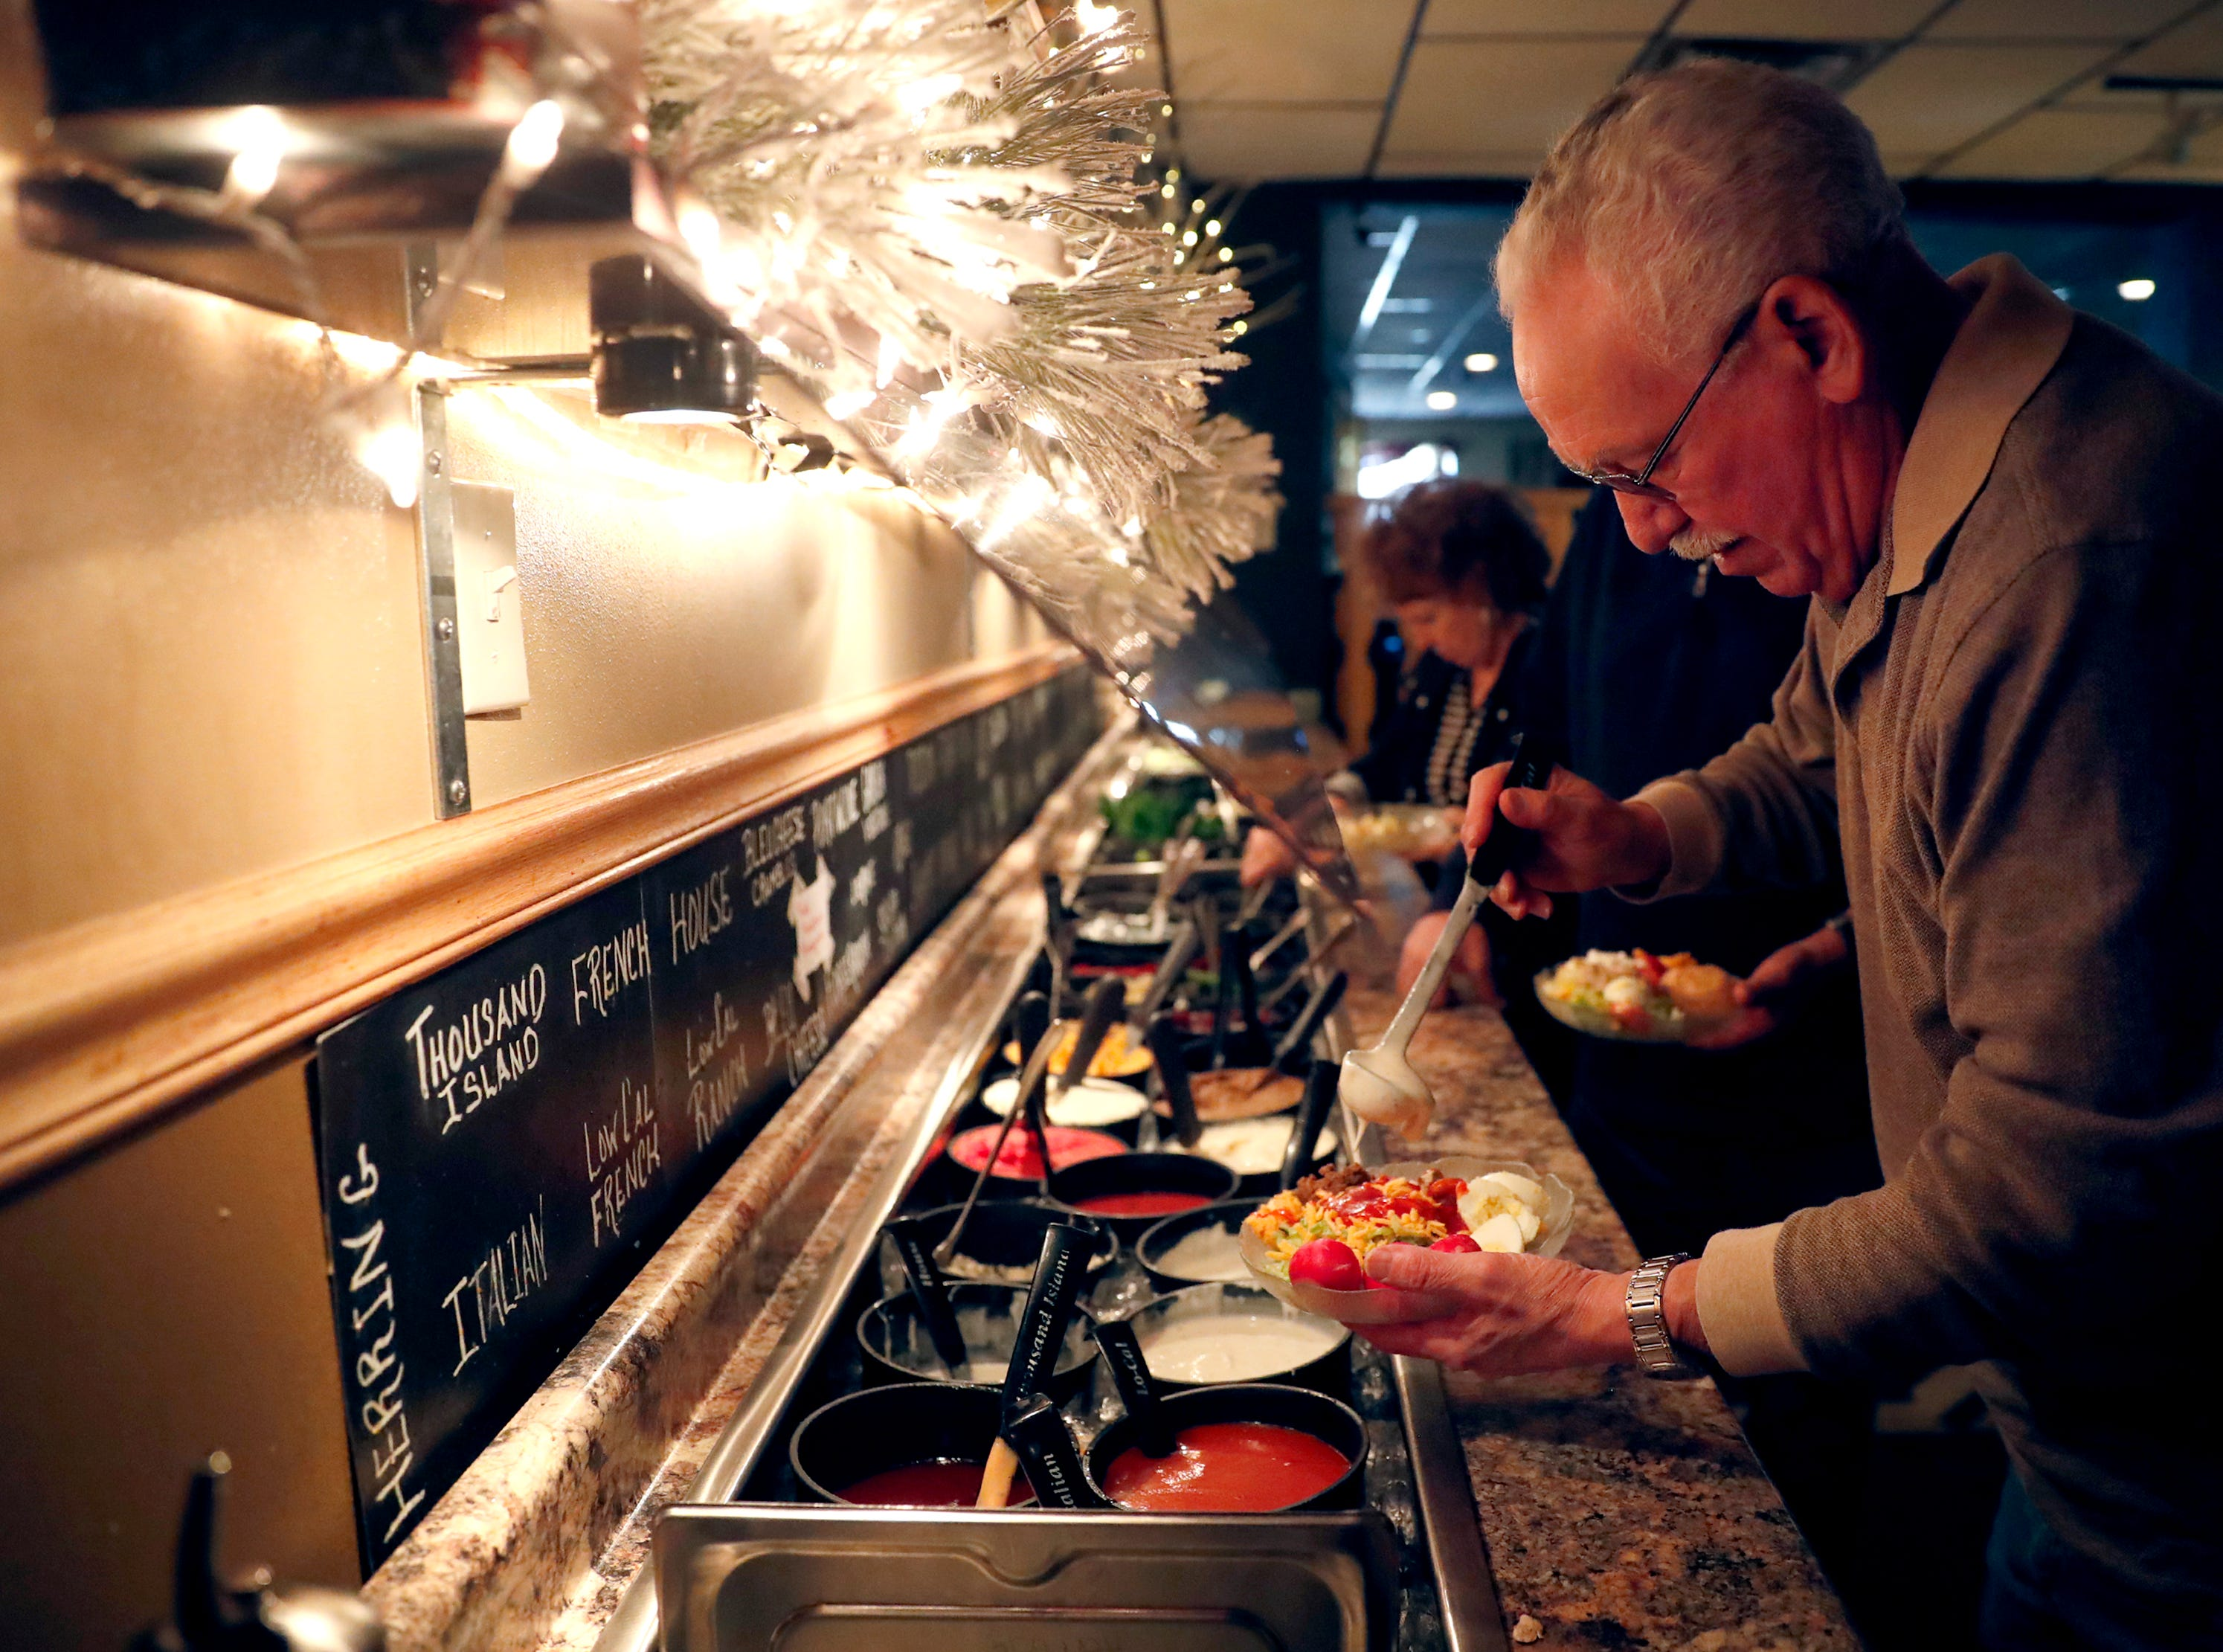 Roger Parkhurst, of Wild Rose, makes his way through the Black Otter Supper Club salad bar Thursday, March 21, 2019, in Hortonville, Wis. 